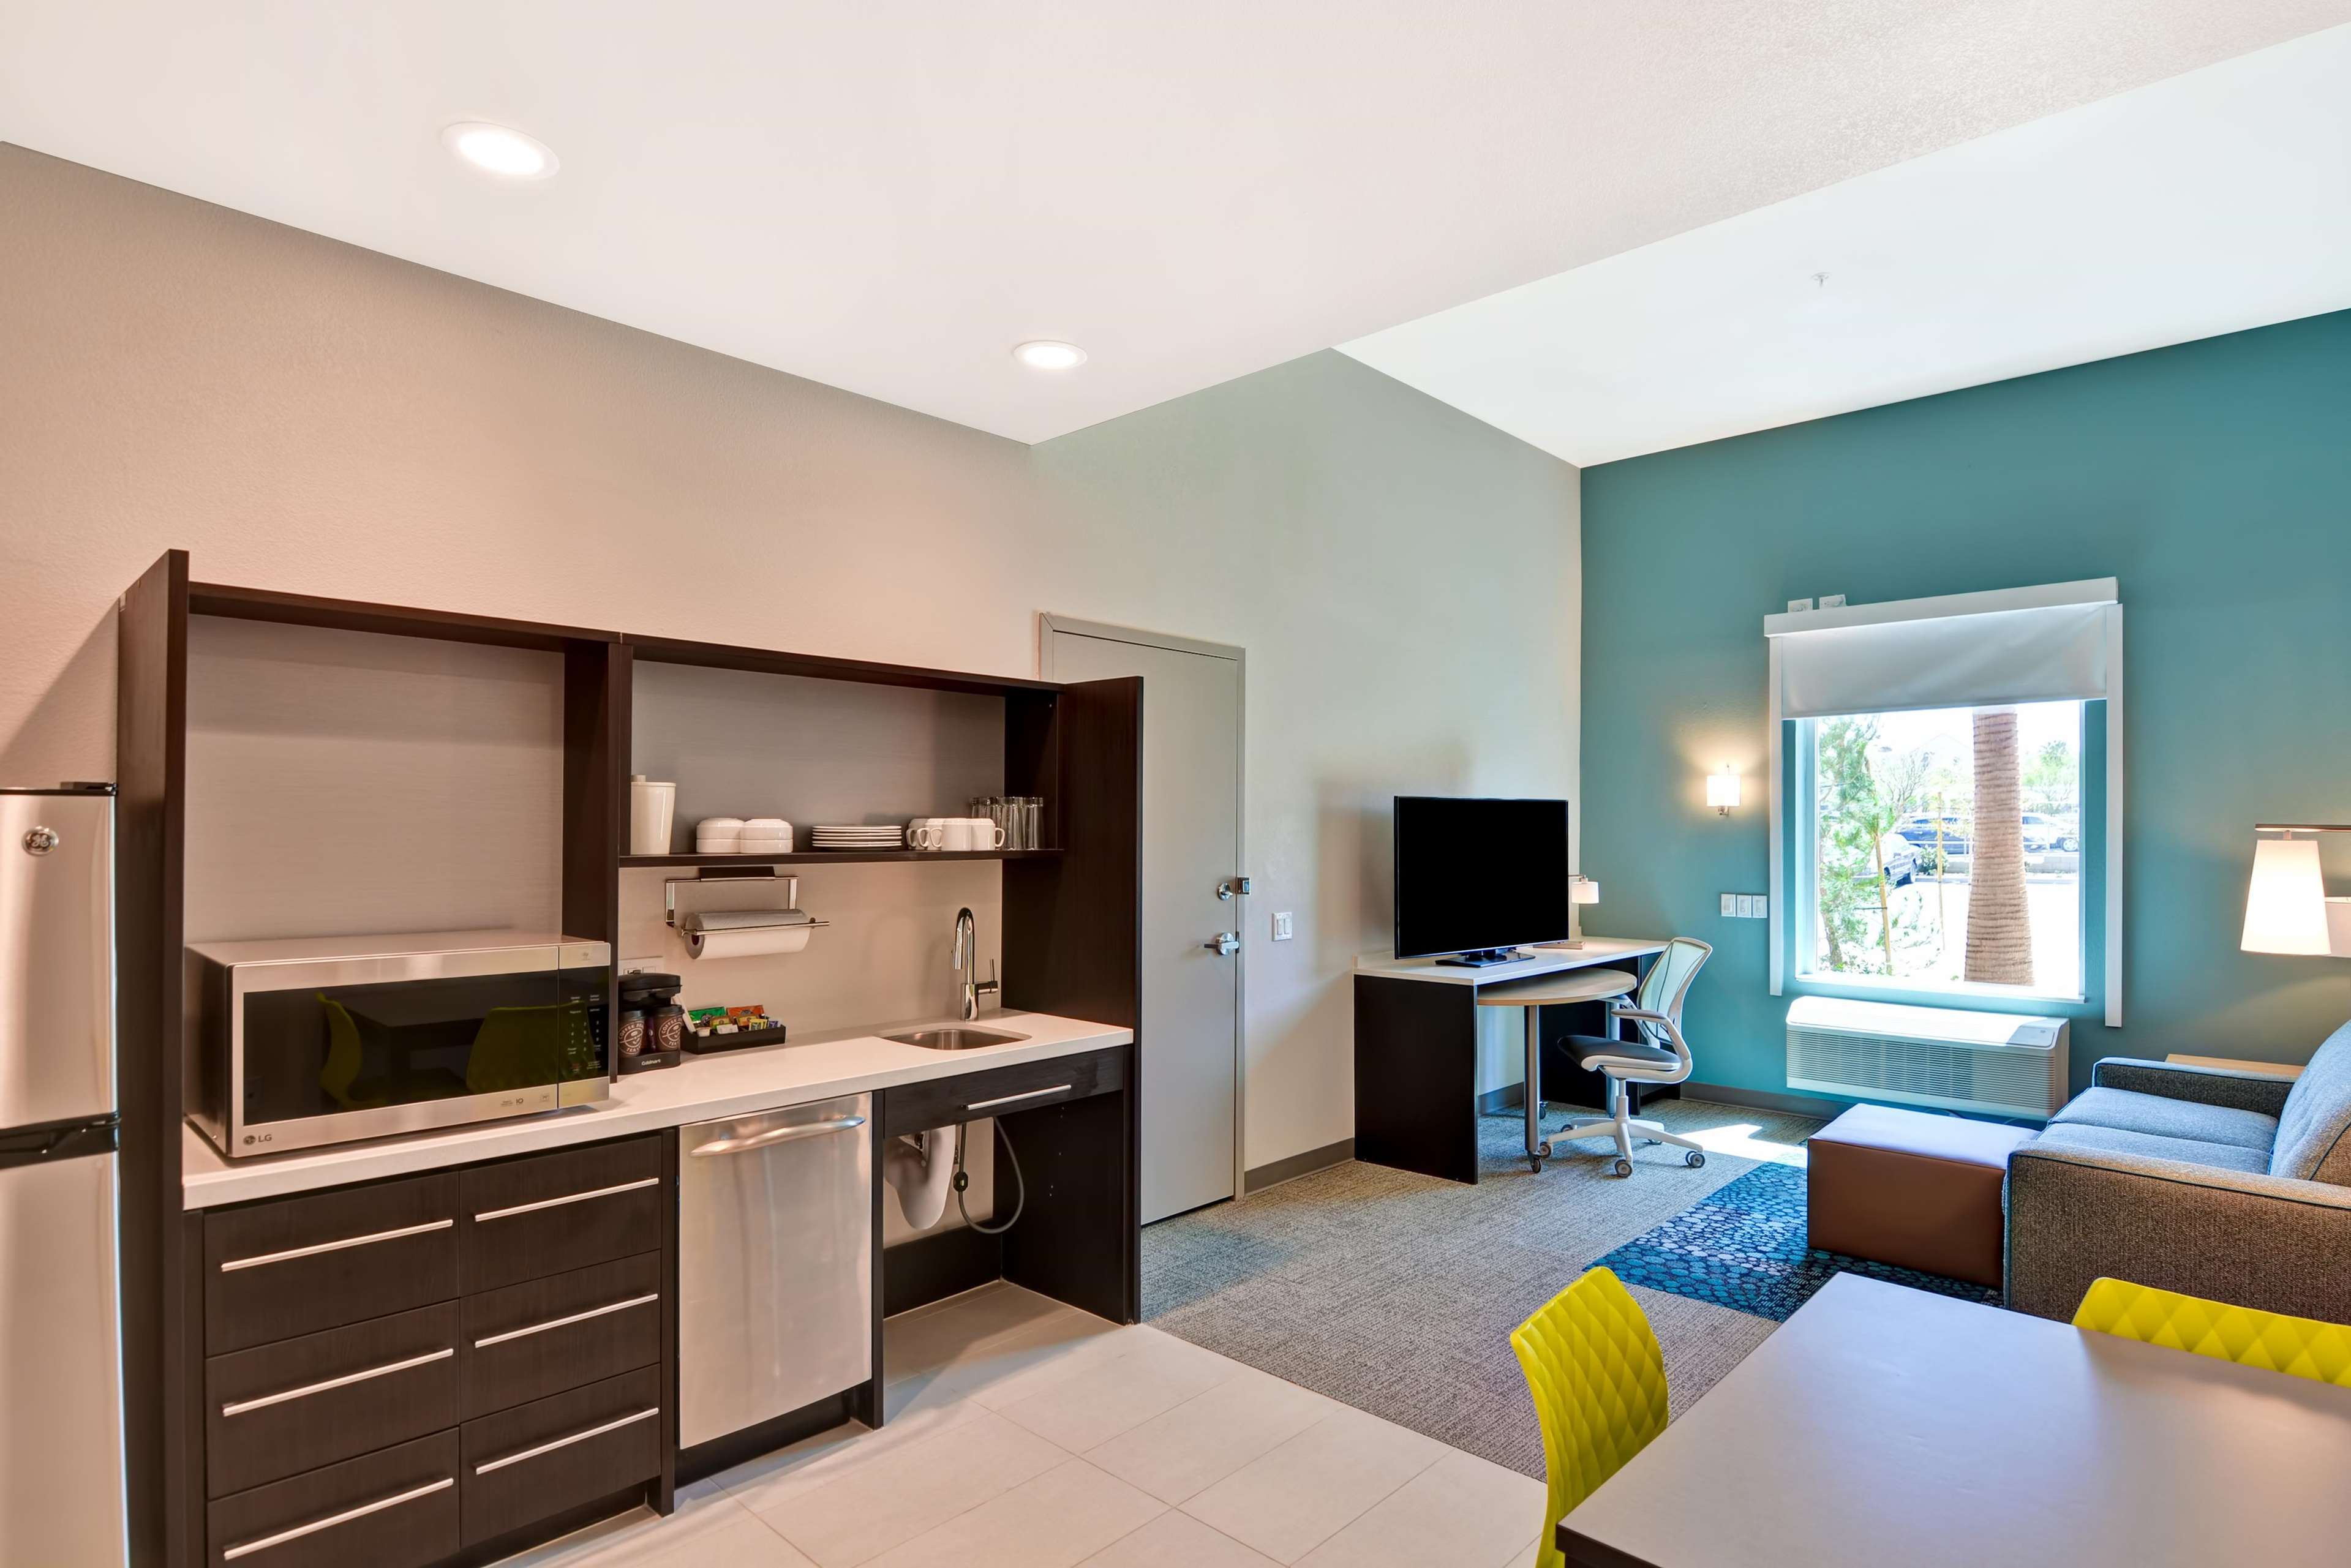 Home2 Suites by Hilton Palmdale image 24